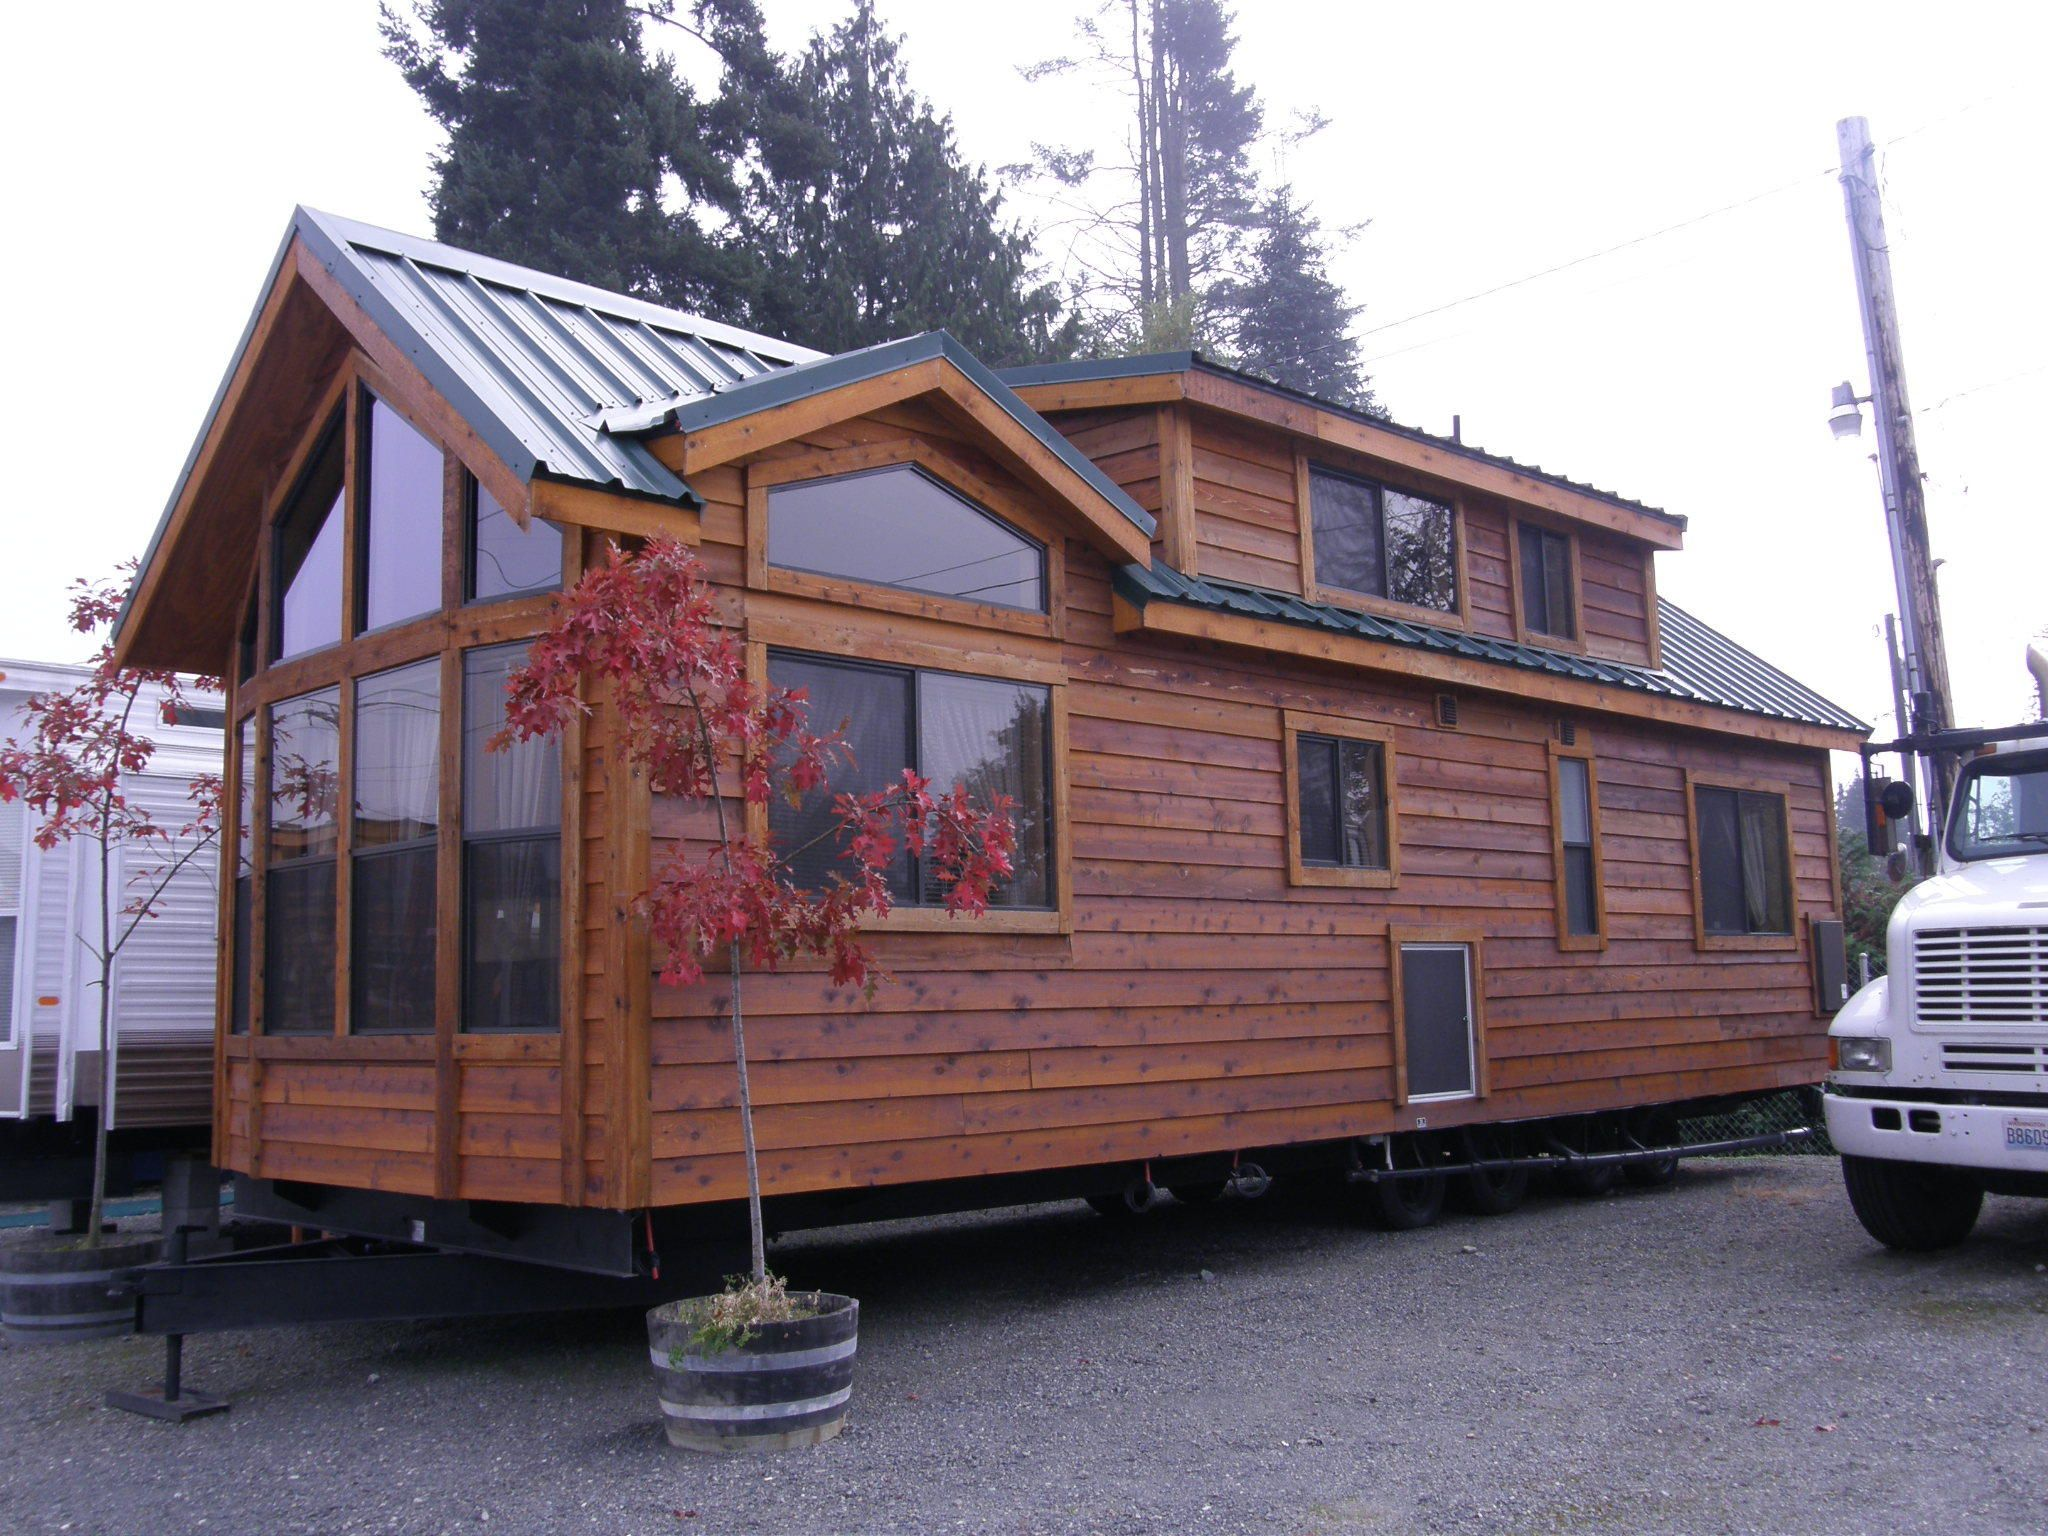 Miraculous 17 Best Ideas About Small Houses On Wheels On Pinterest Tiny Largest Home Design Picture Inspirations Pitcheantrous